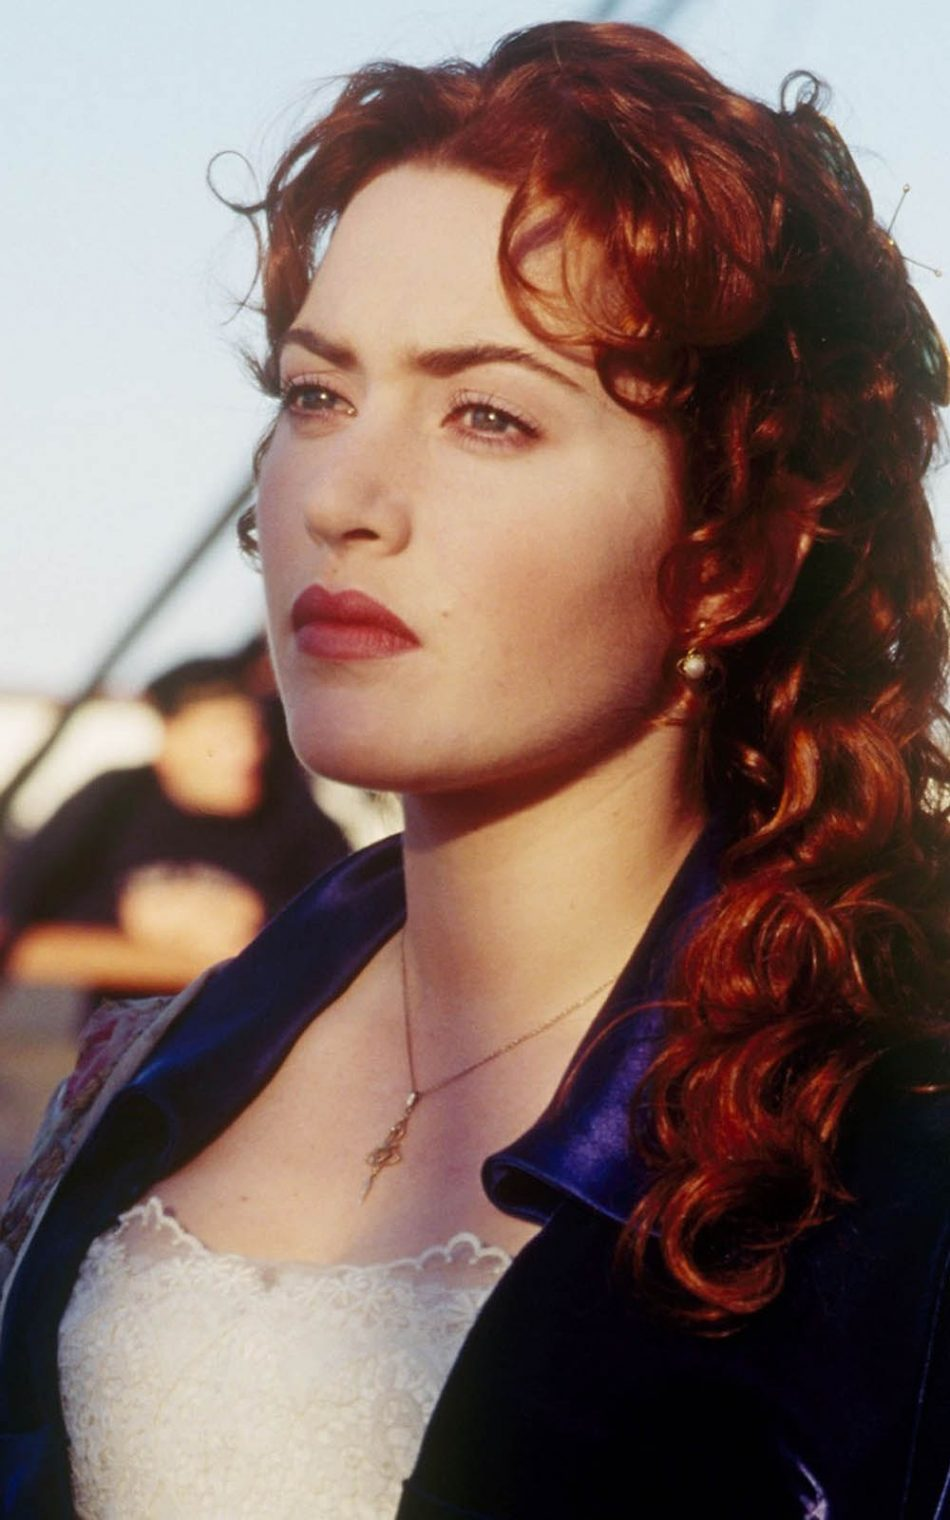 Wallpaper Hd For Mobile Free Download Girl Kate Winslet Titanic Www Pixshark Com Images Galleries